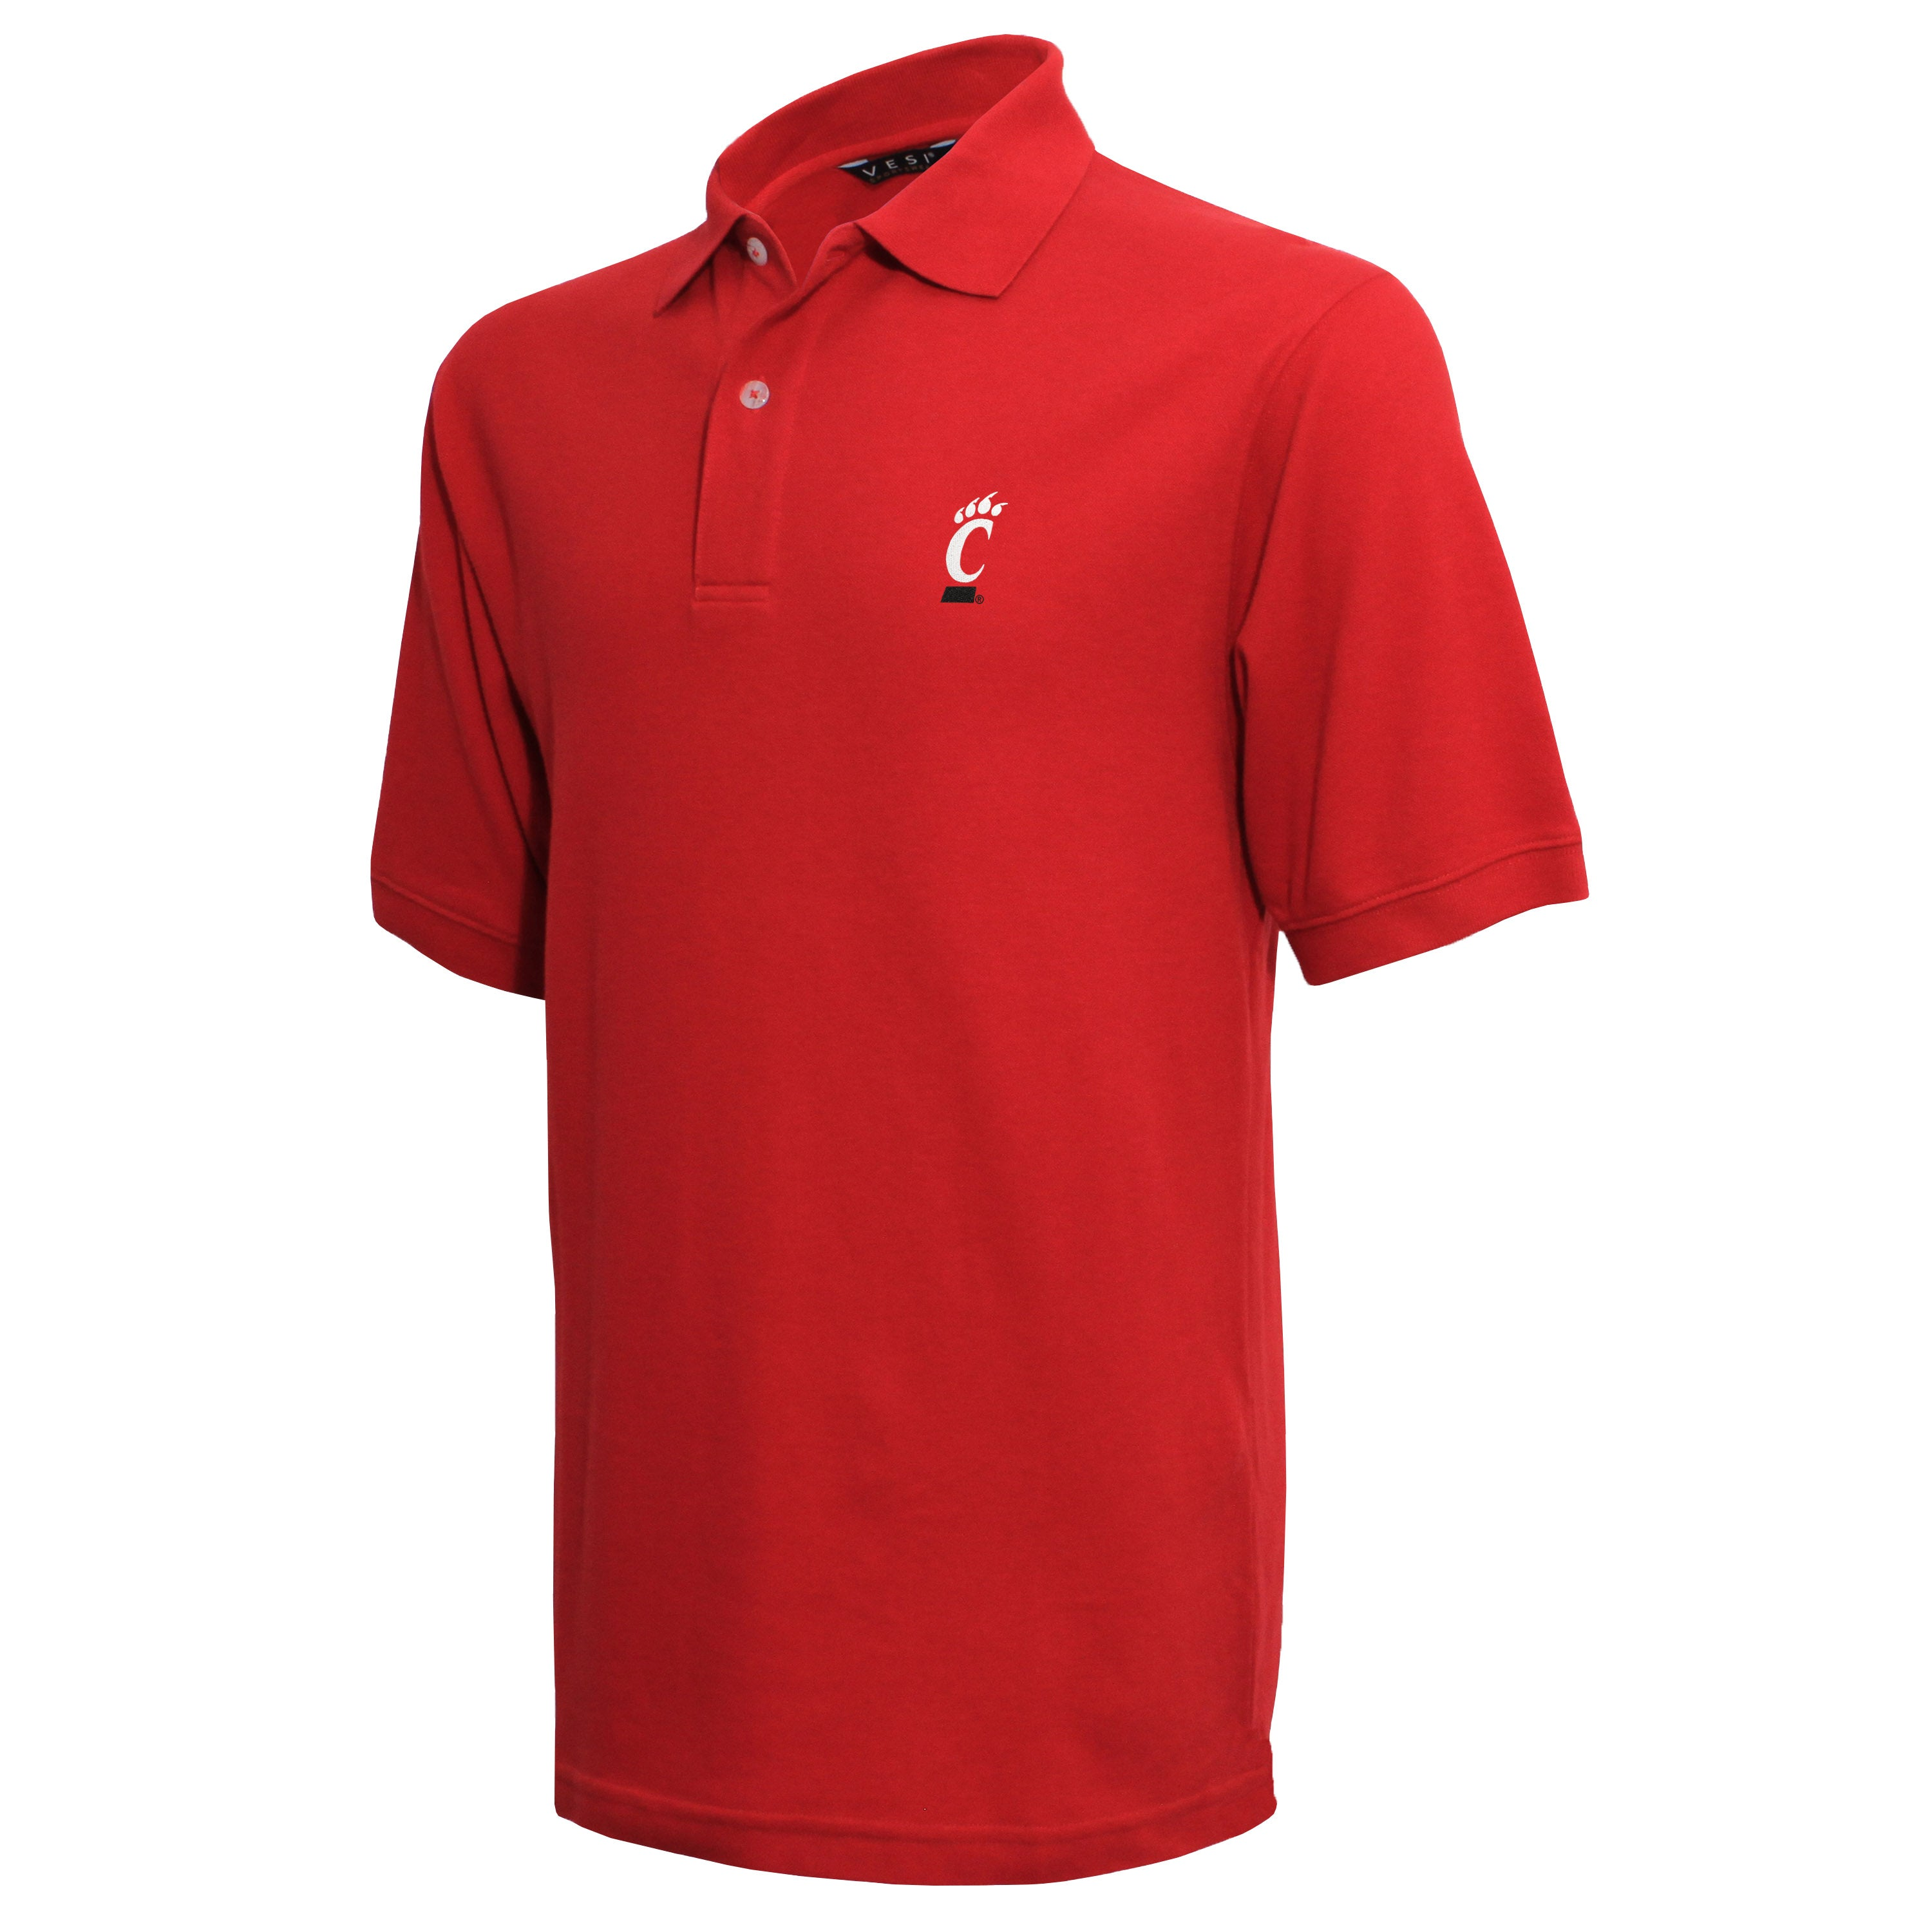 Vesi Cincinnati Men's Red Pique Polo Shirt